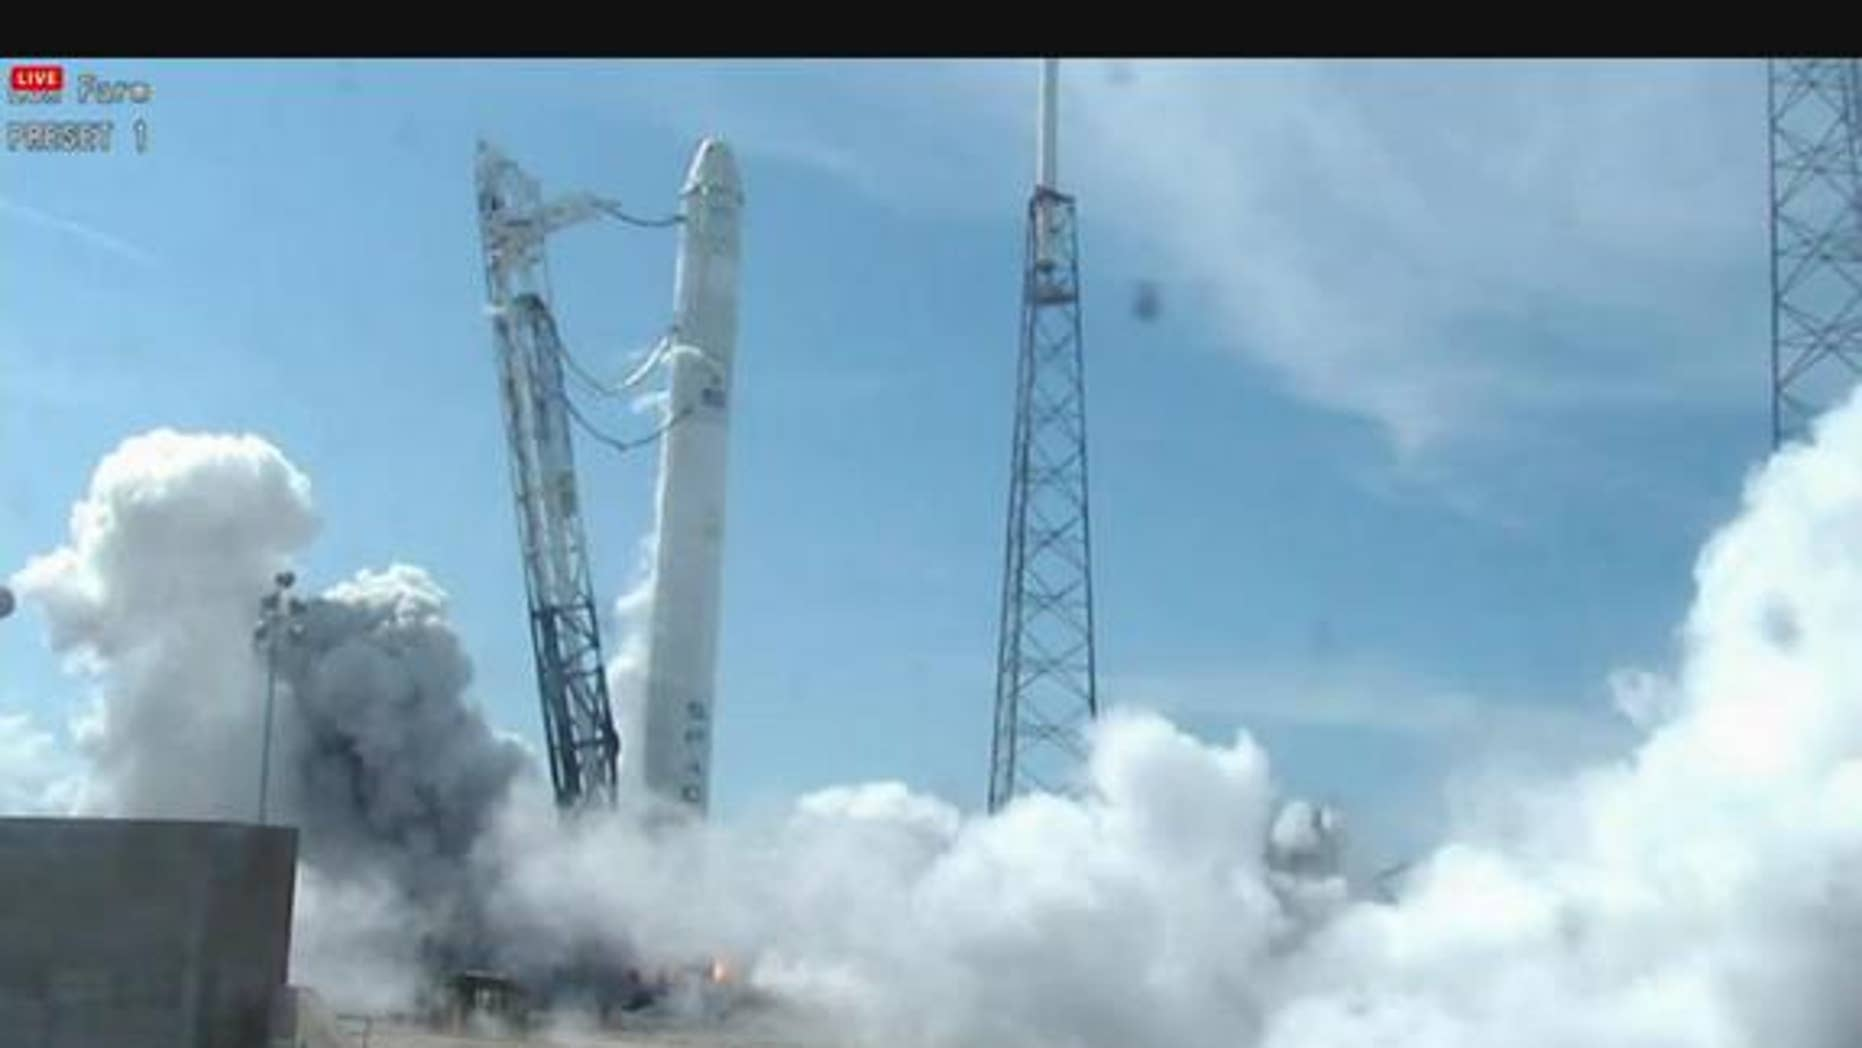 SpaceX conducted a static fire of its Falcon 9 rocket on April 30, 2012. During the test, the nine Merlin engines that power the rocket's first stage were ignited for two seconds.